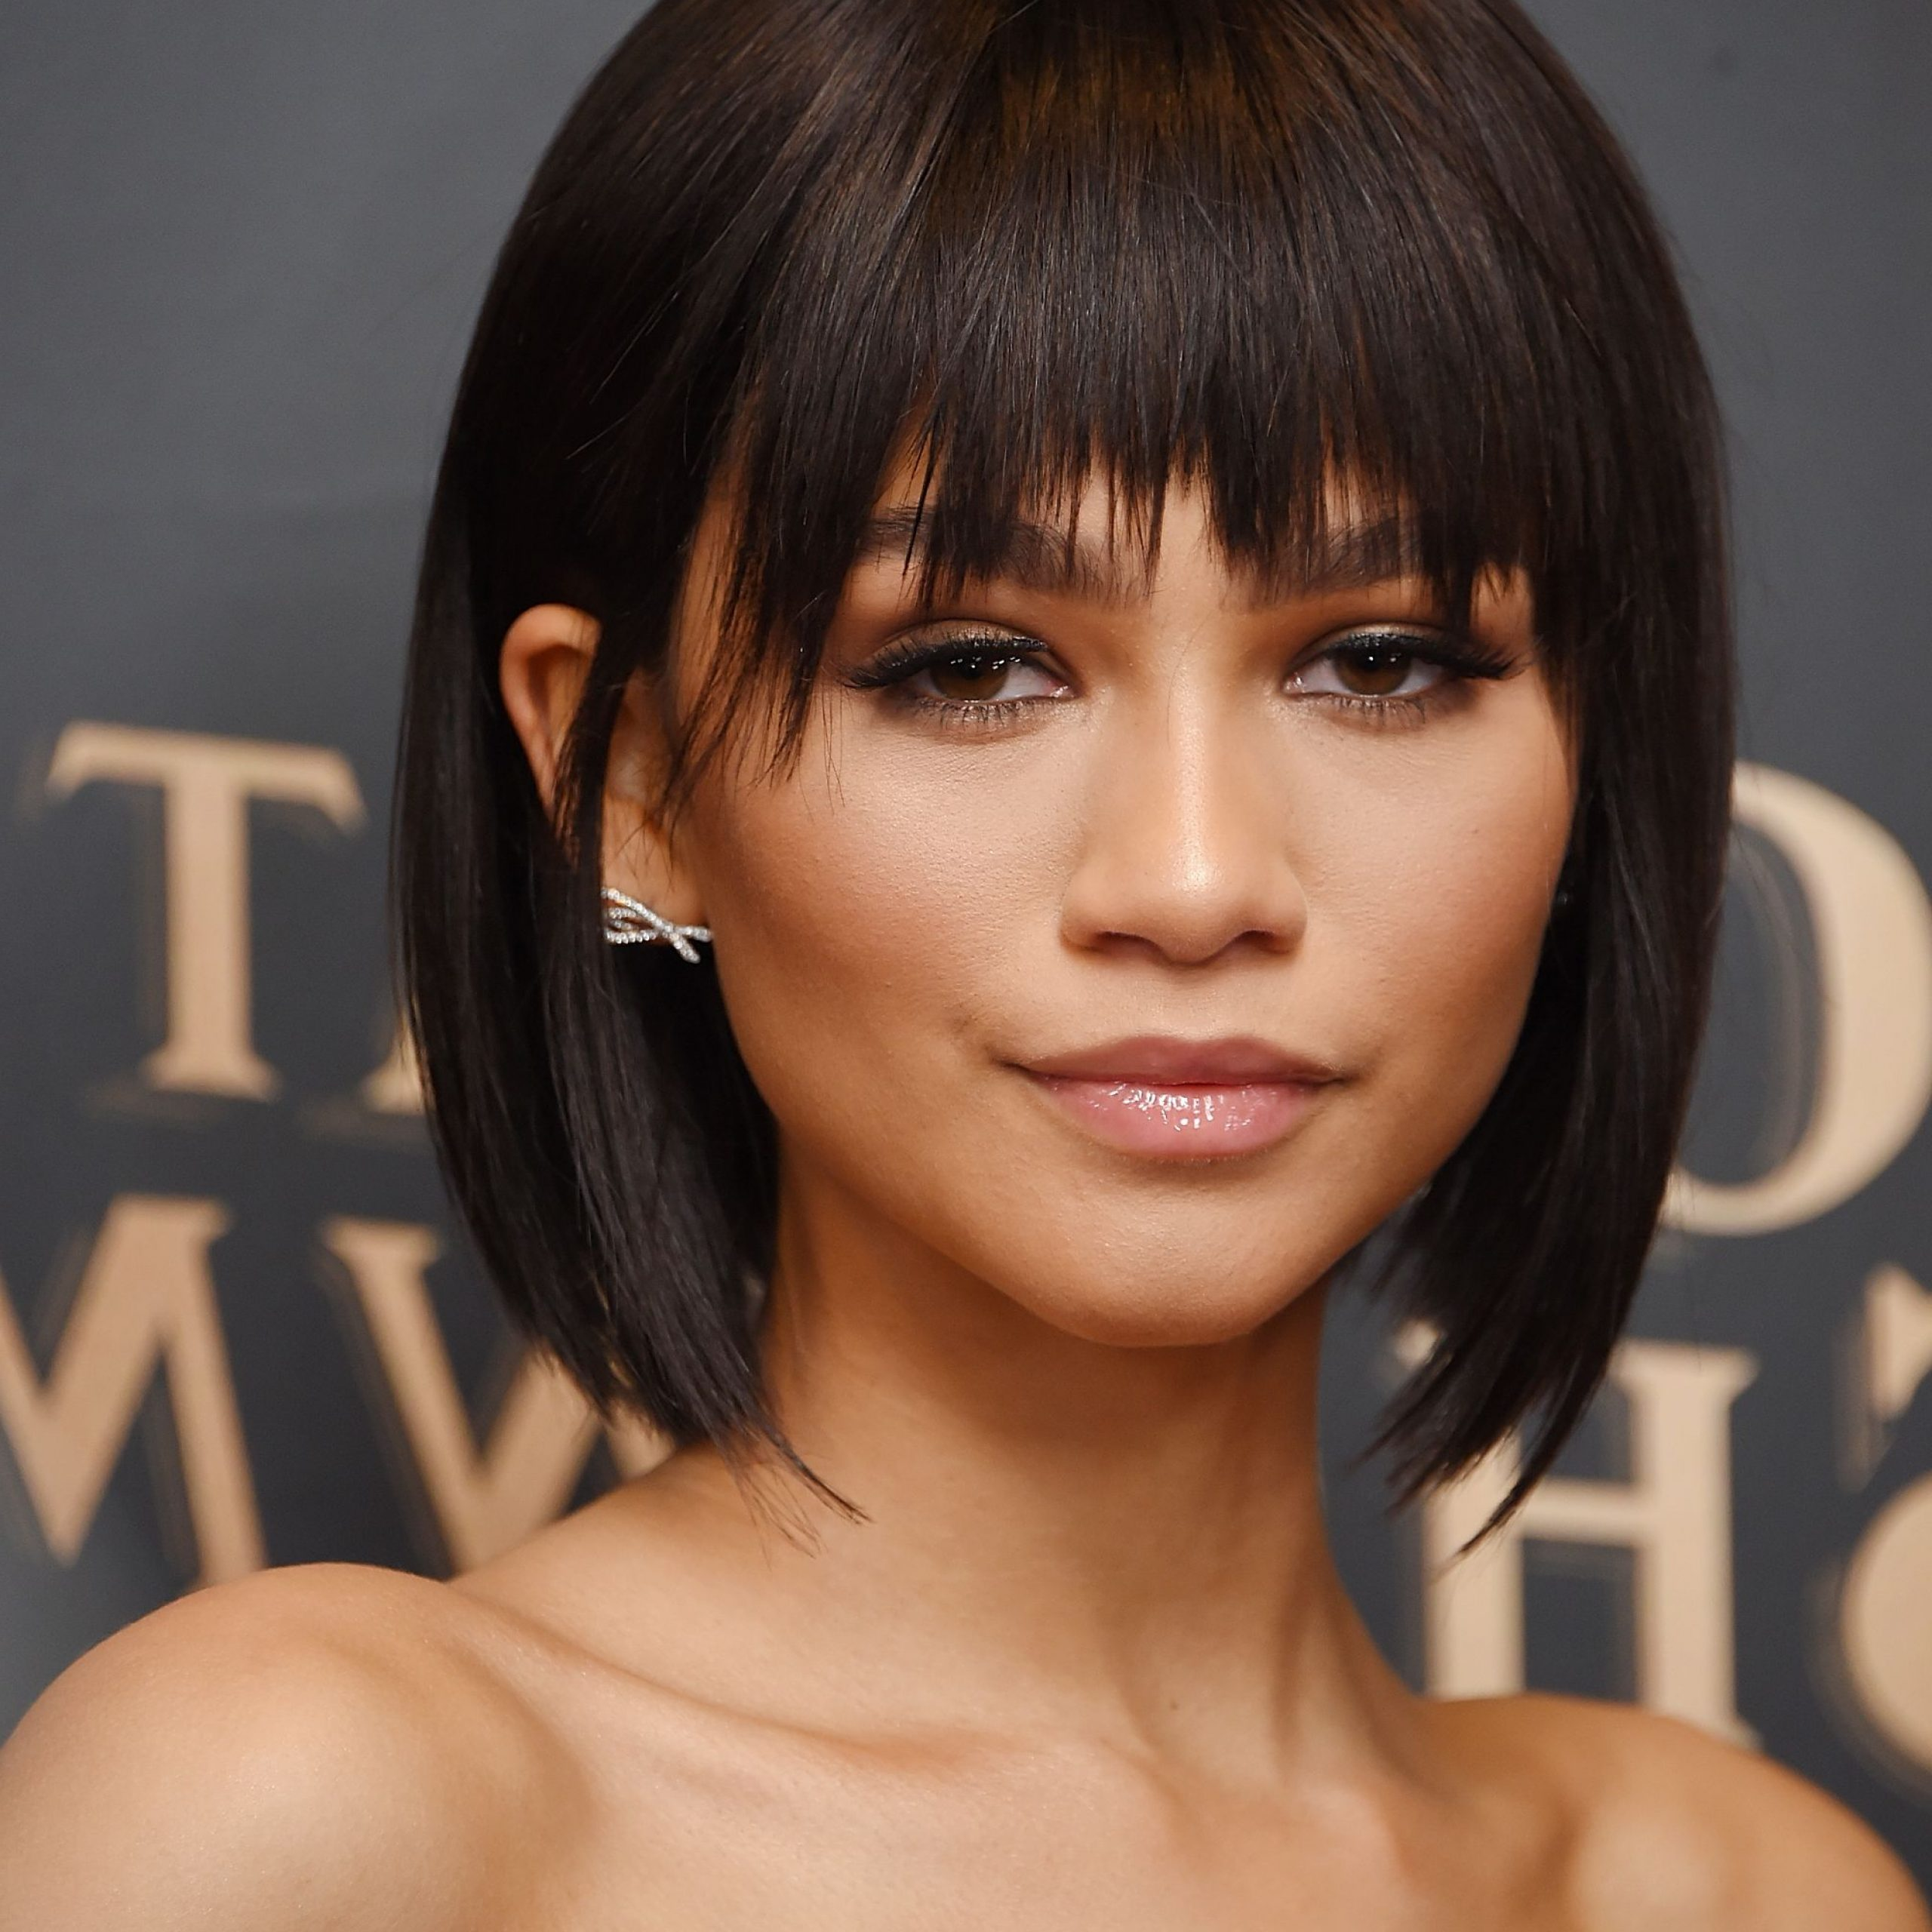 70 Best Bob Styles Of 2019 – Bob Haircuts & Hairstyles For Women With A Line Bob Hairstyles With Arched Bangs (View 11 of 20)